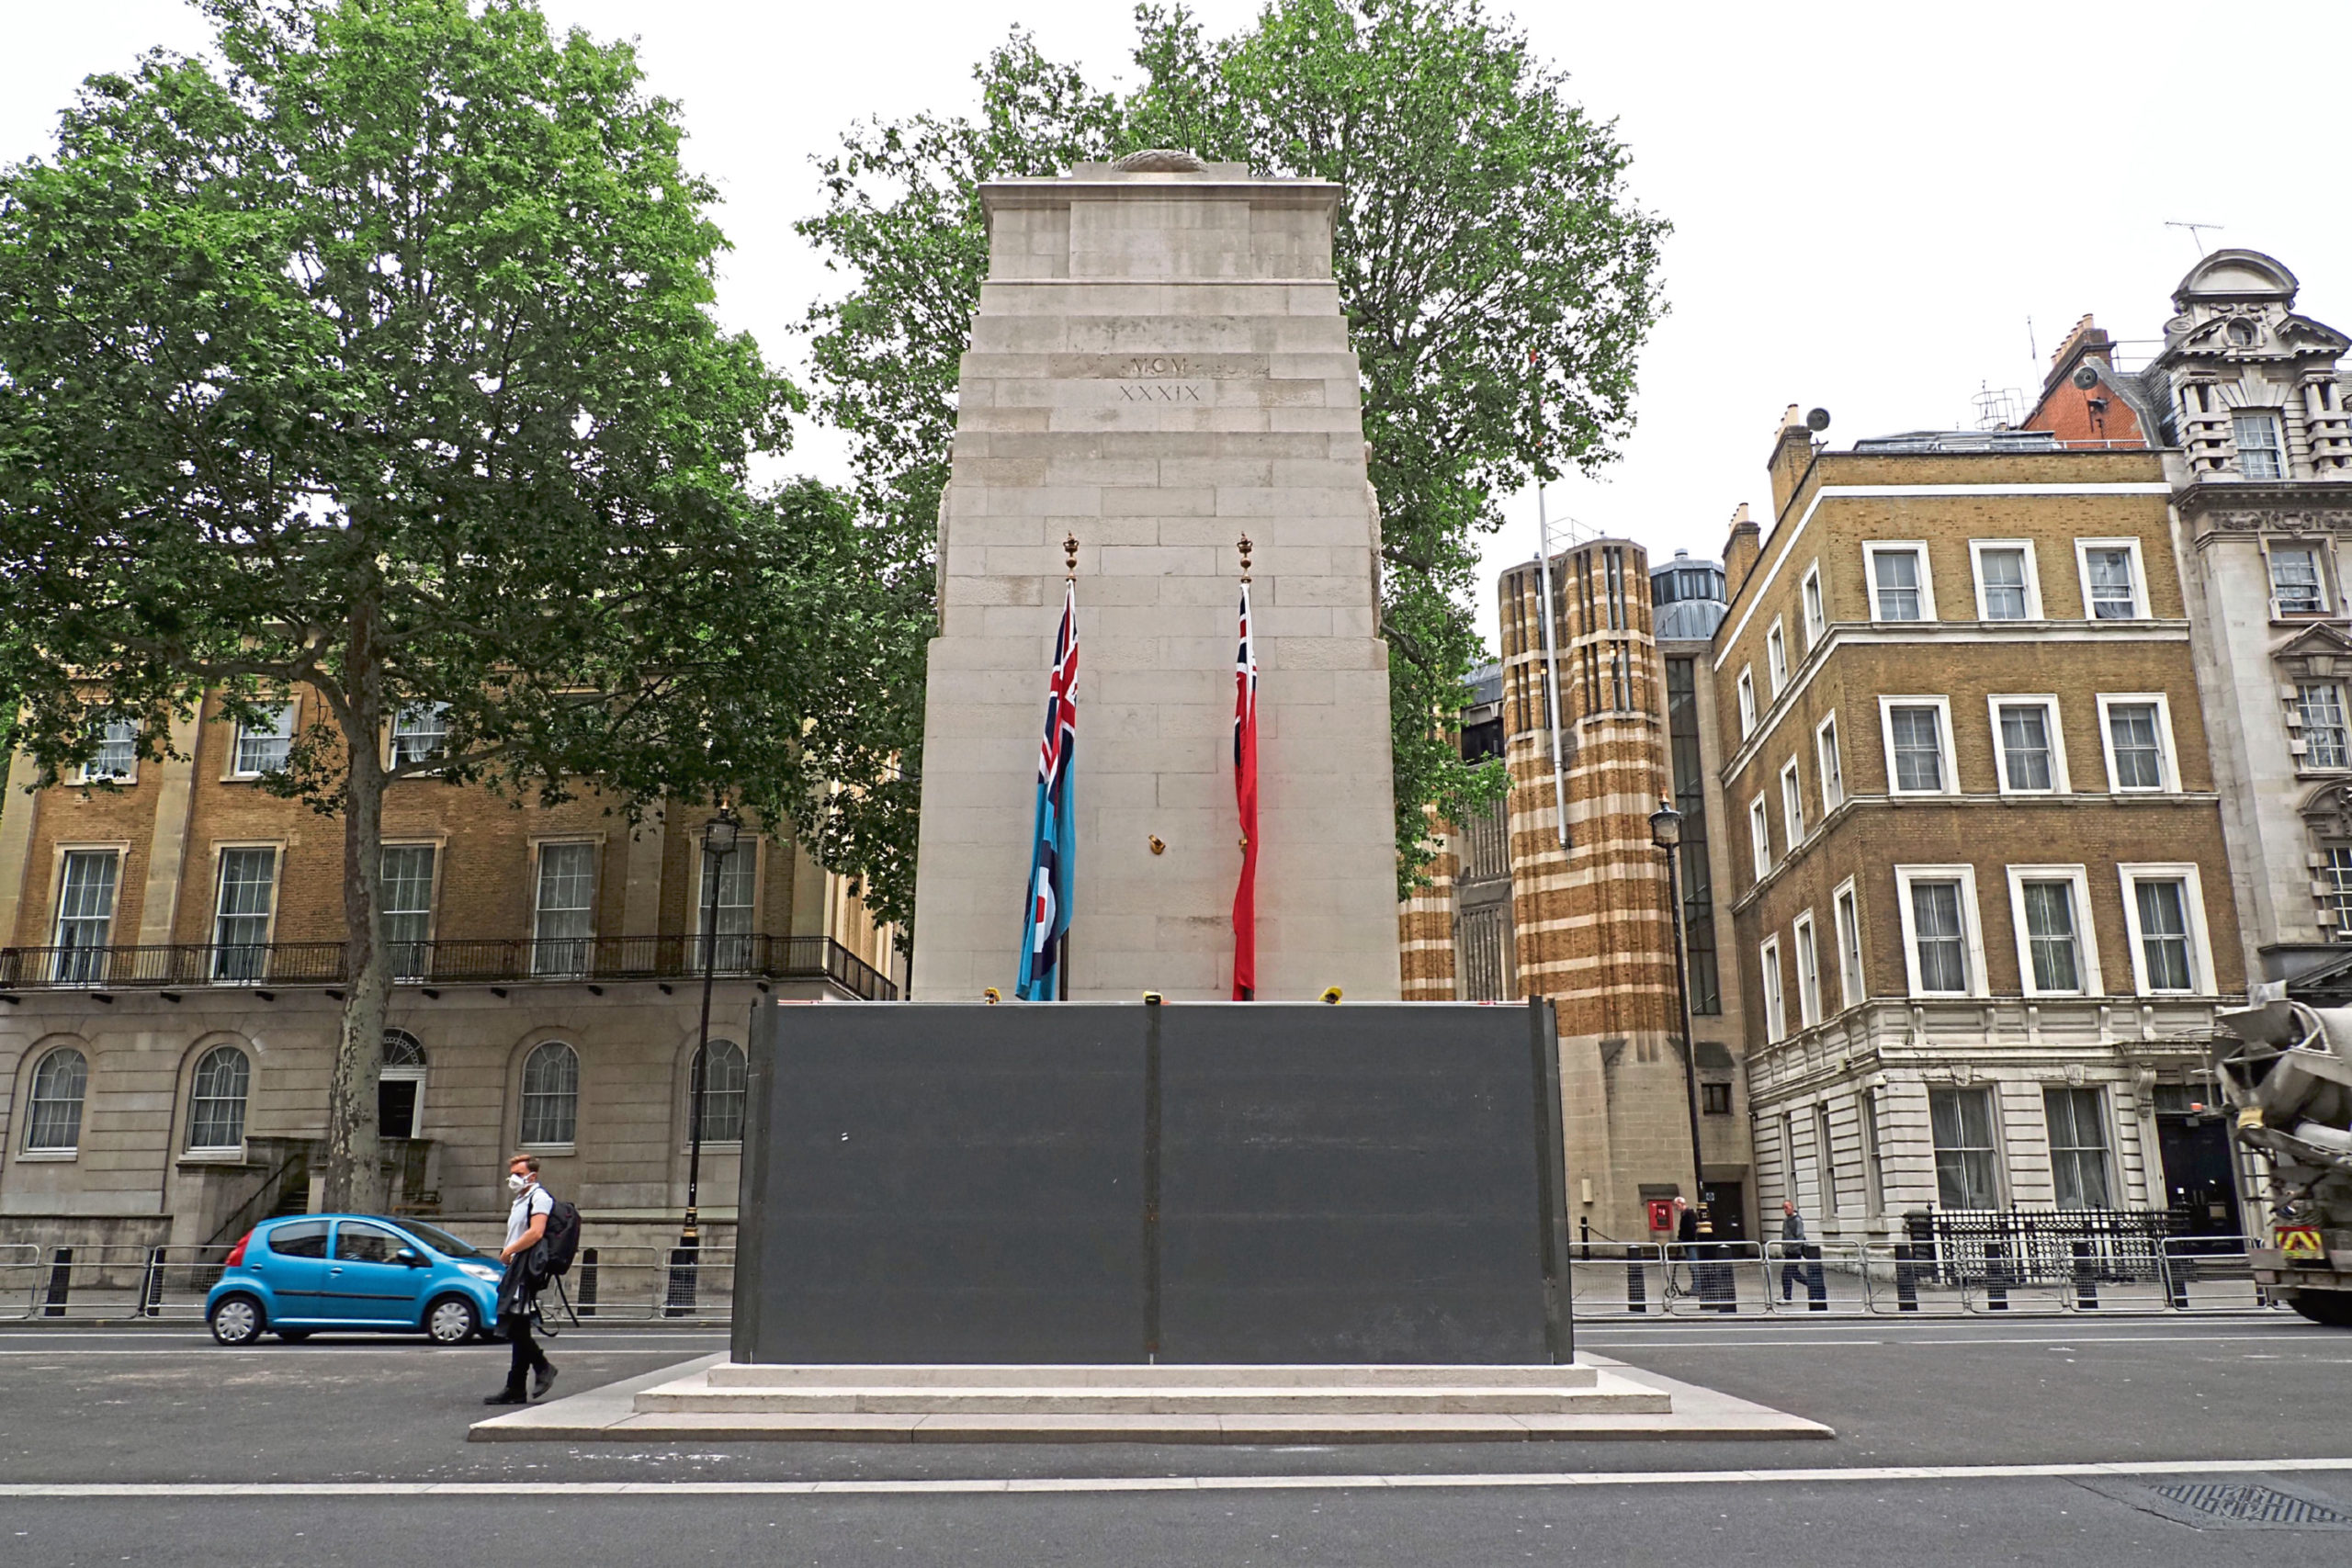 Cenotaph boarded over in Whitehall